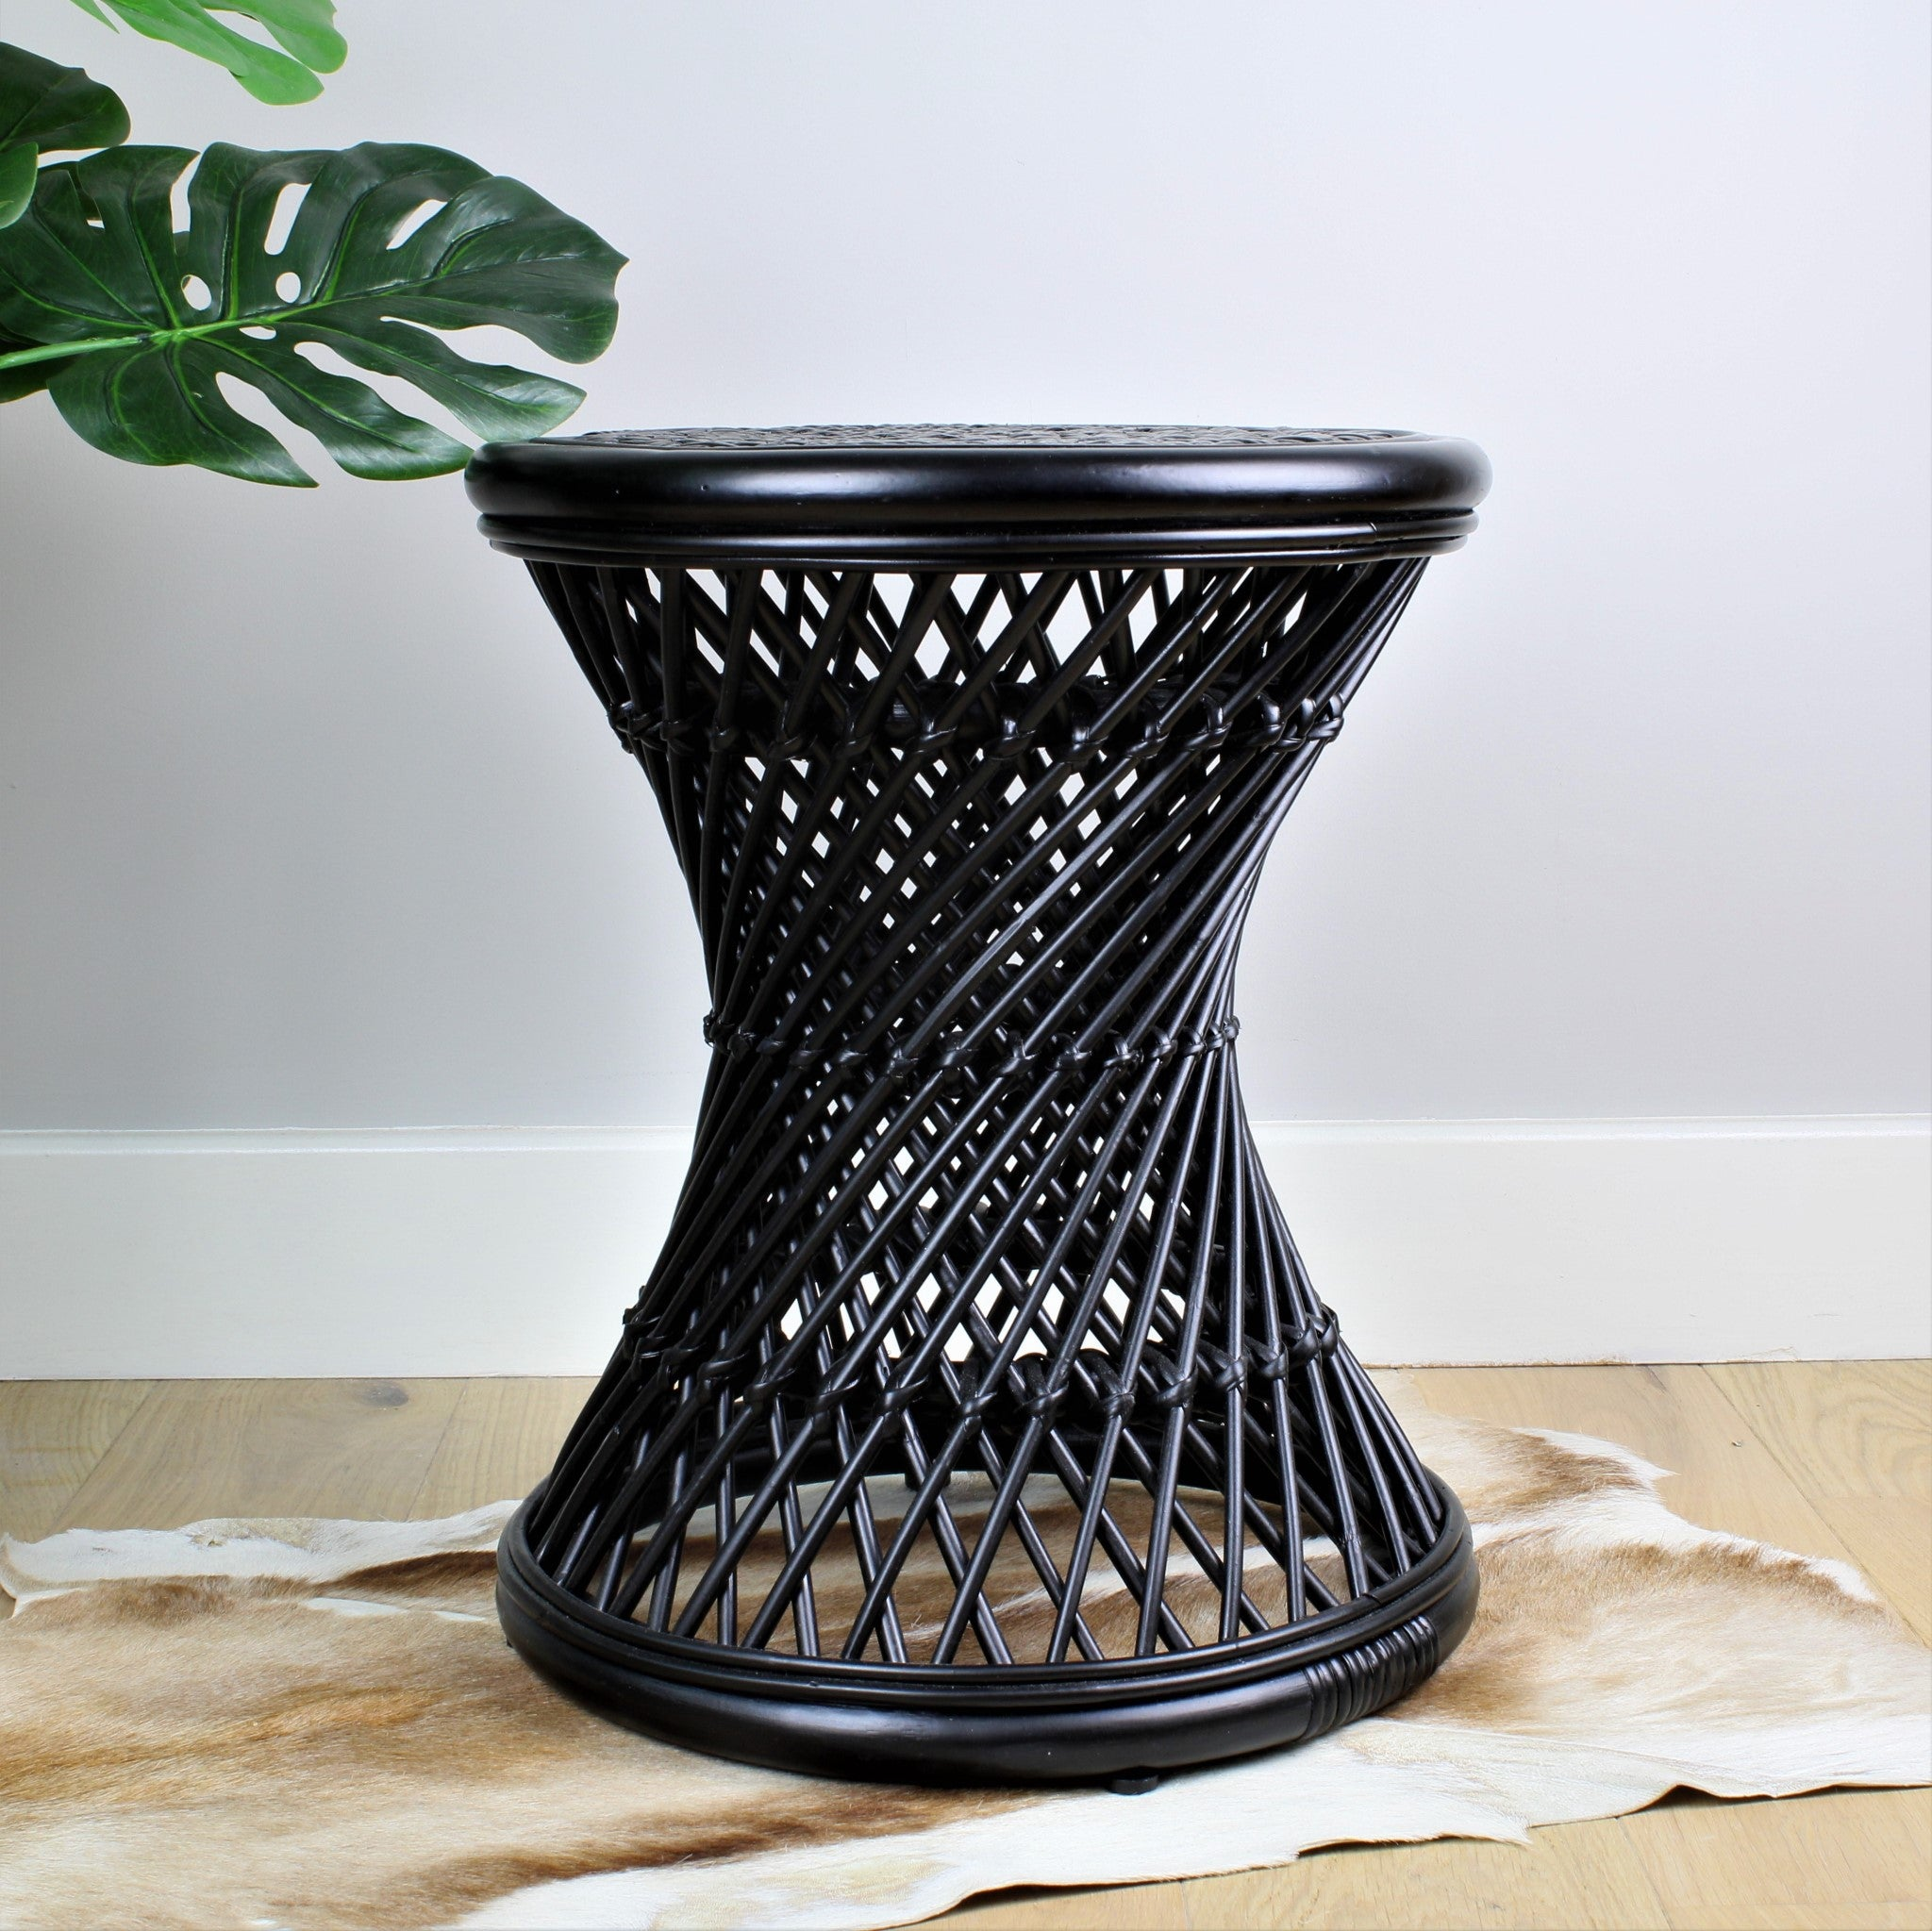 Natural Rattan Cane Koko Stool in Black - The Rattan Company